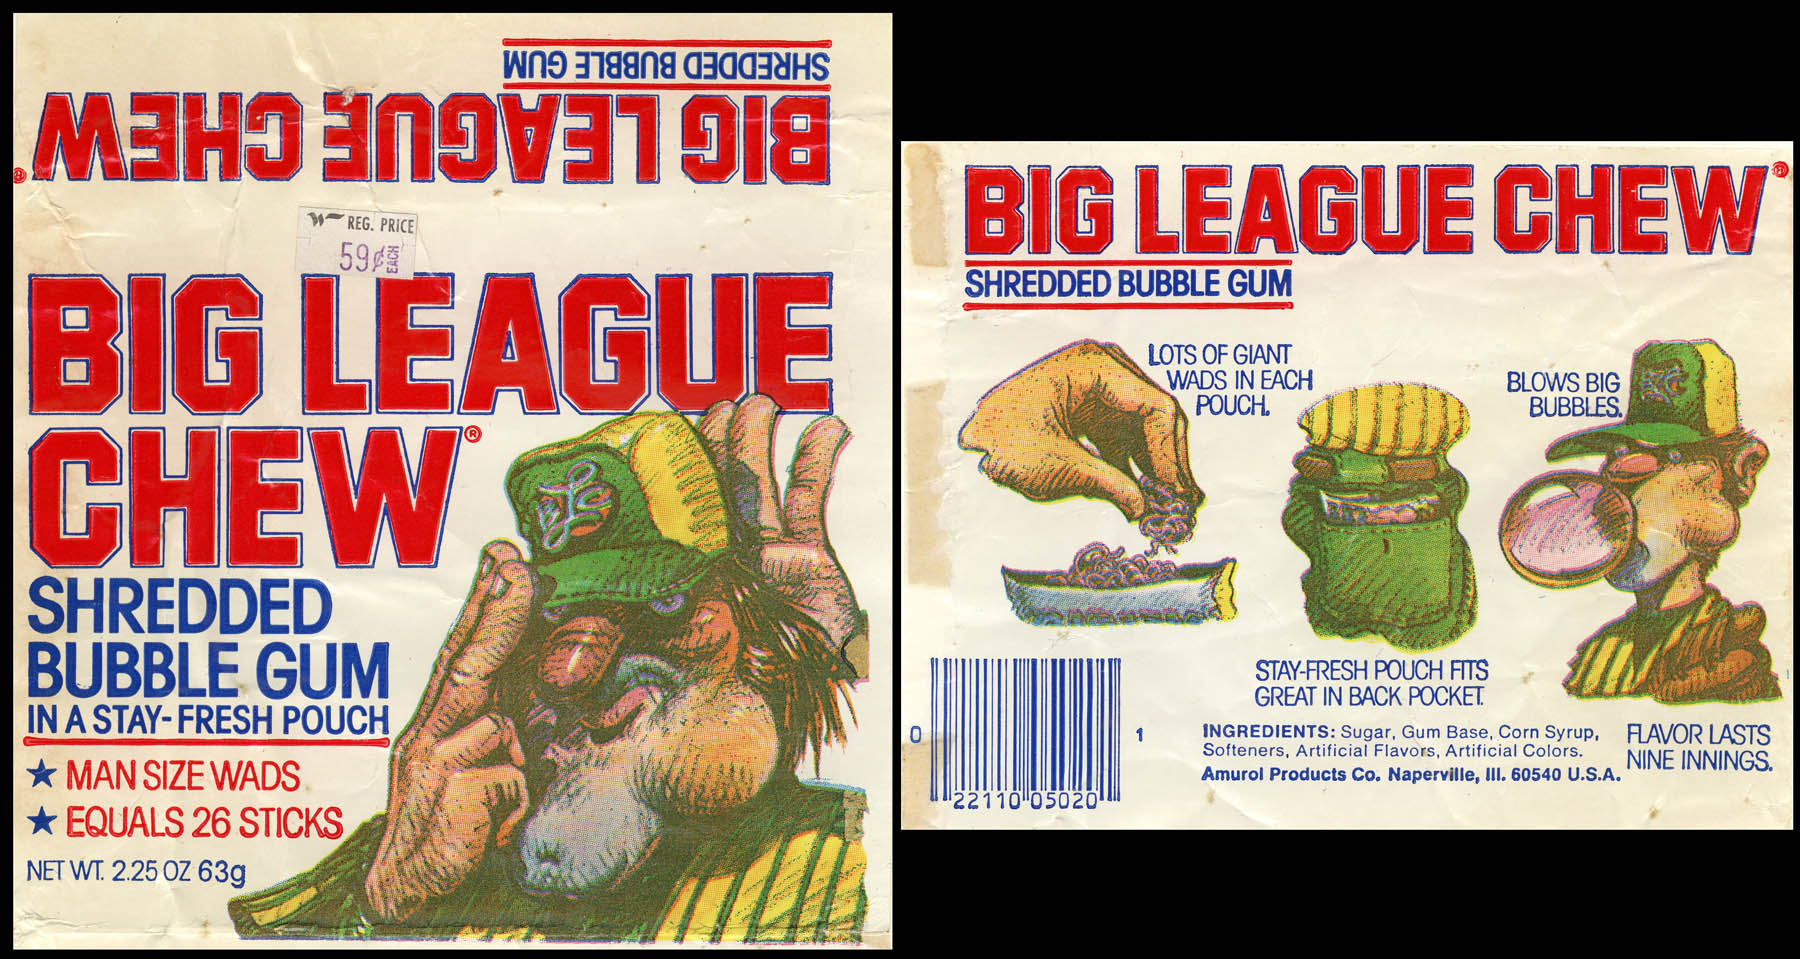 A front-and-back panel from an original 1980 Big League Chew pouch.